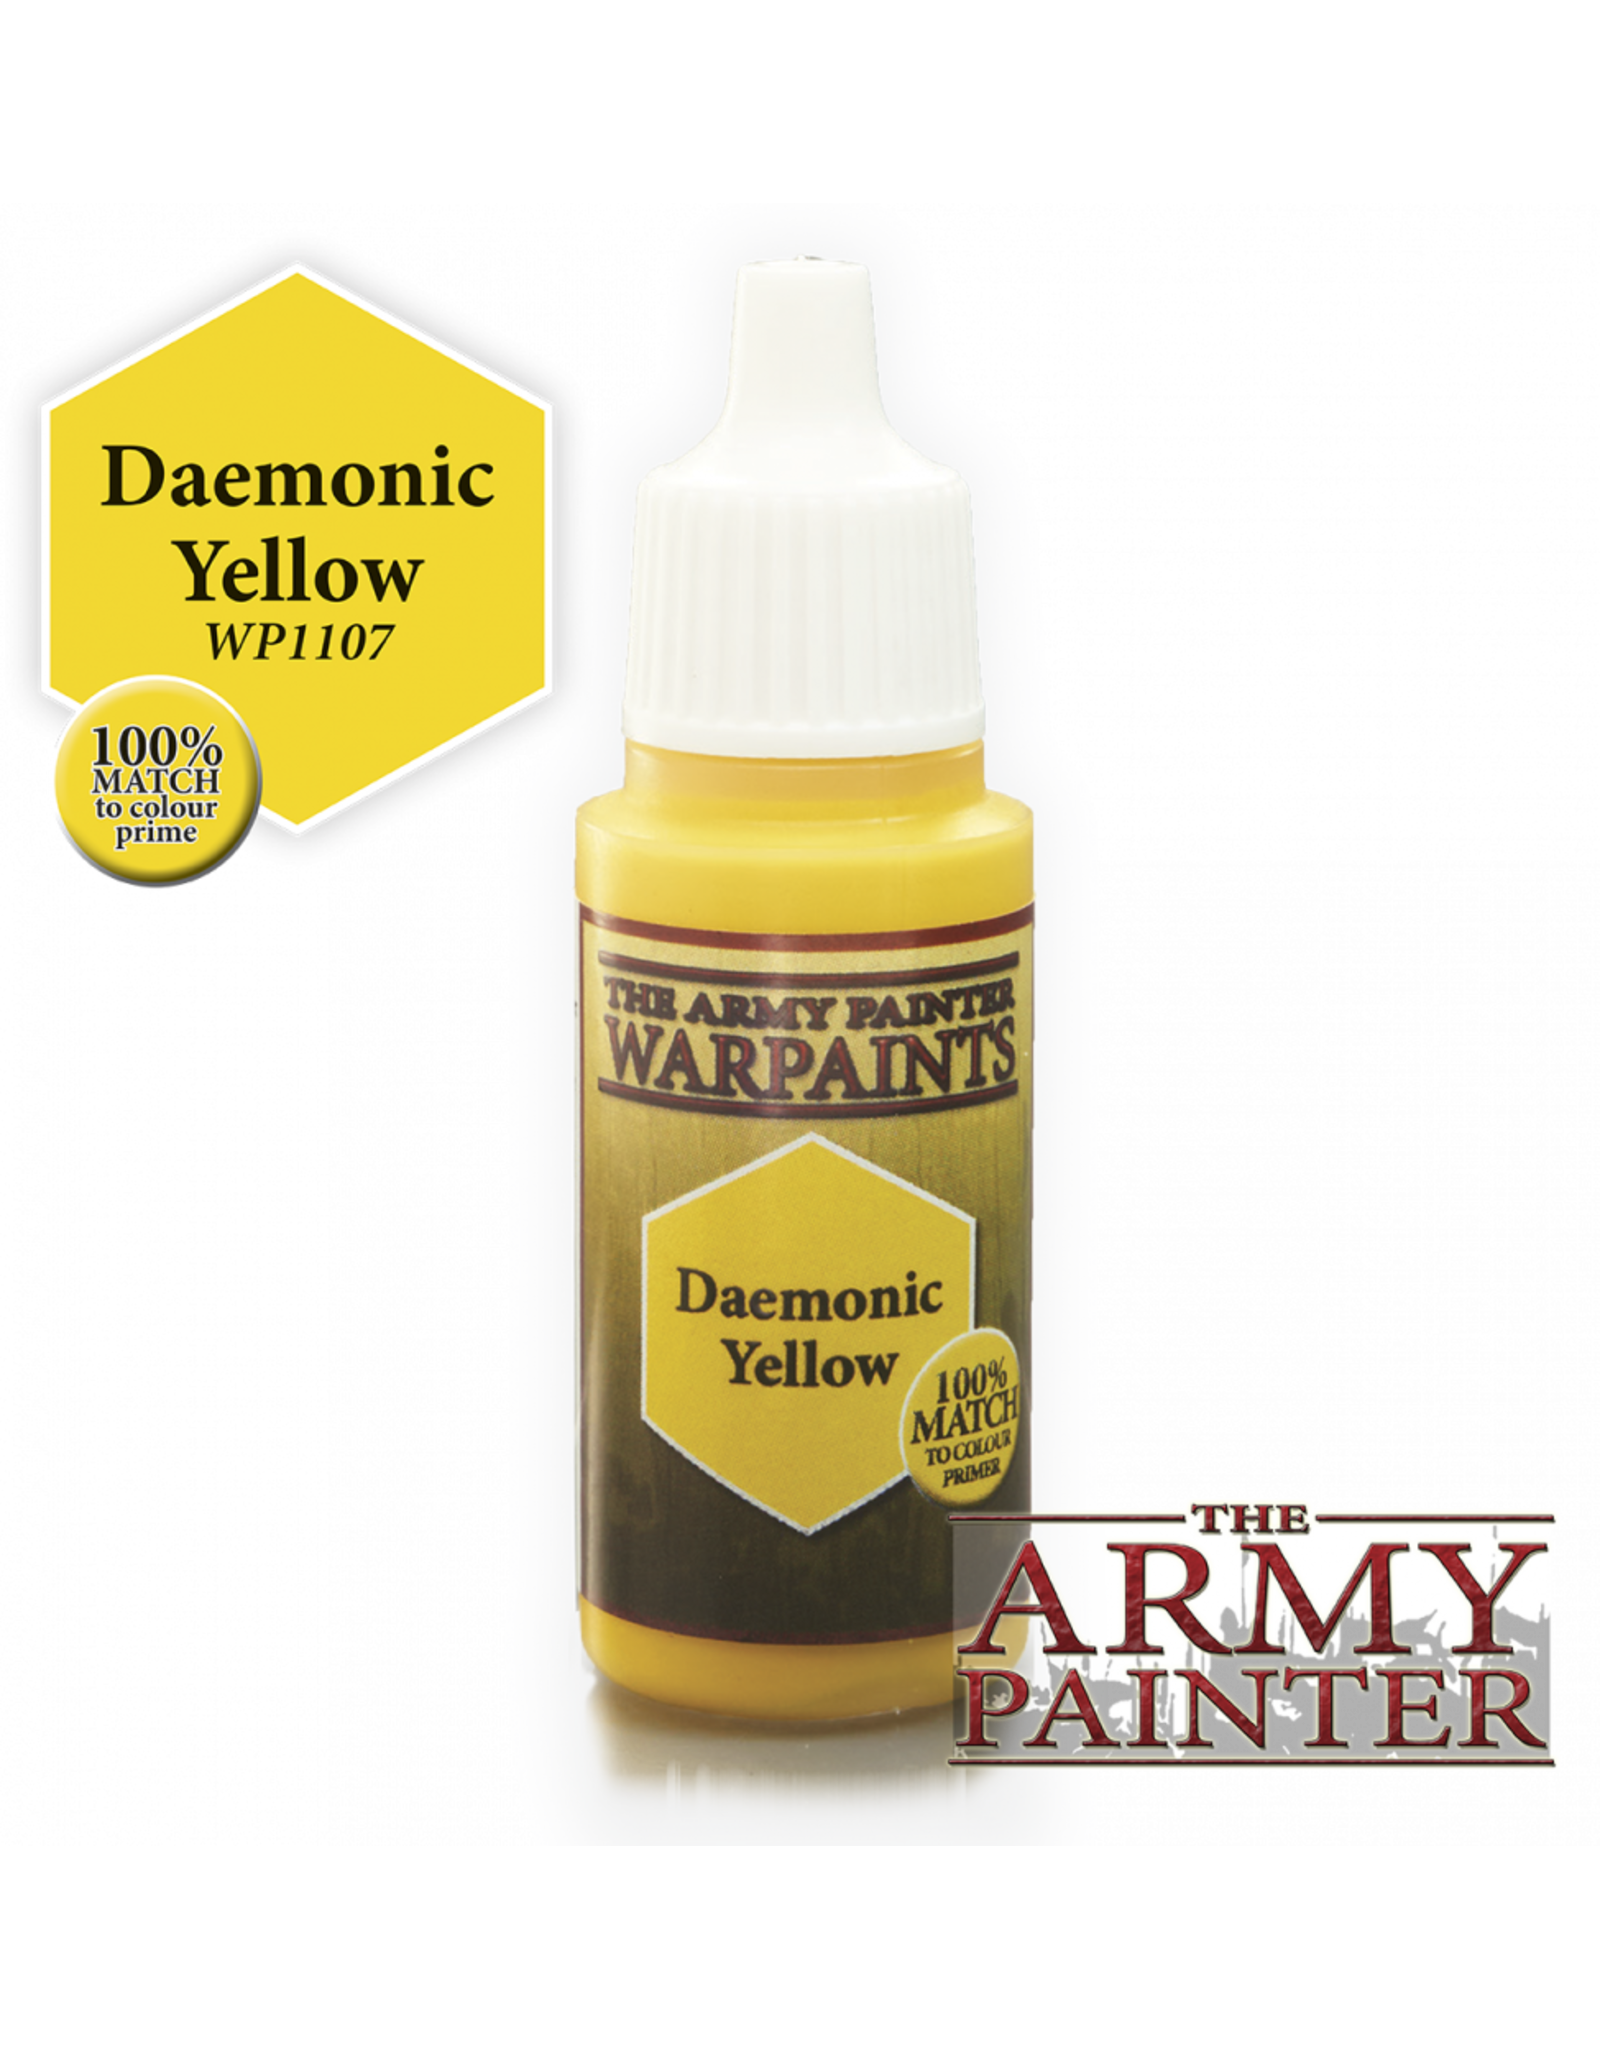 THE ARMY PAINTER ARMY PAINTER WARPAINTS DAEMONIC YELLOW